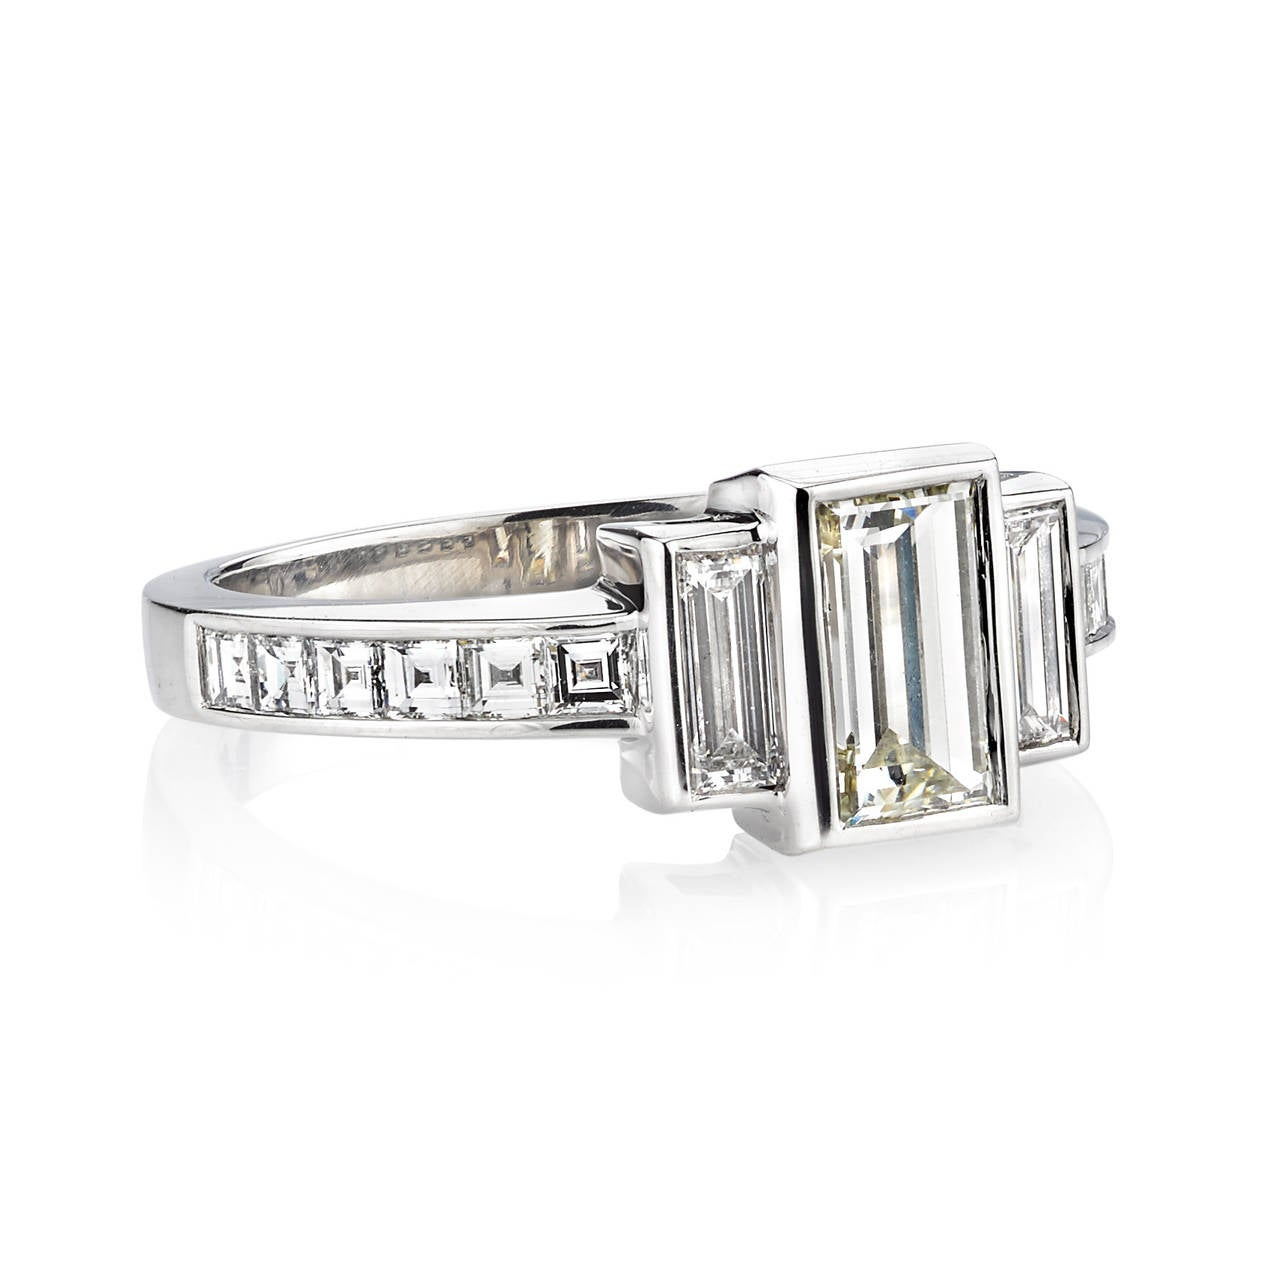 Baguette Emerald Cut Diamond Platinum Engagement Ring For Sale at 1stdibs